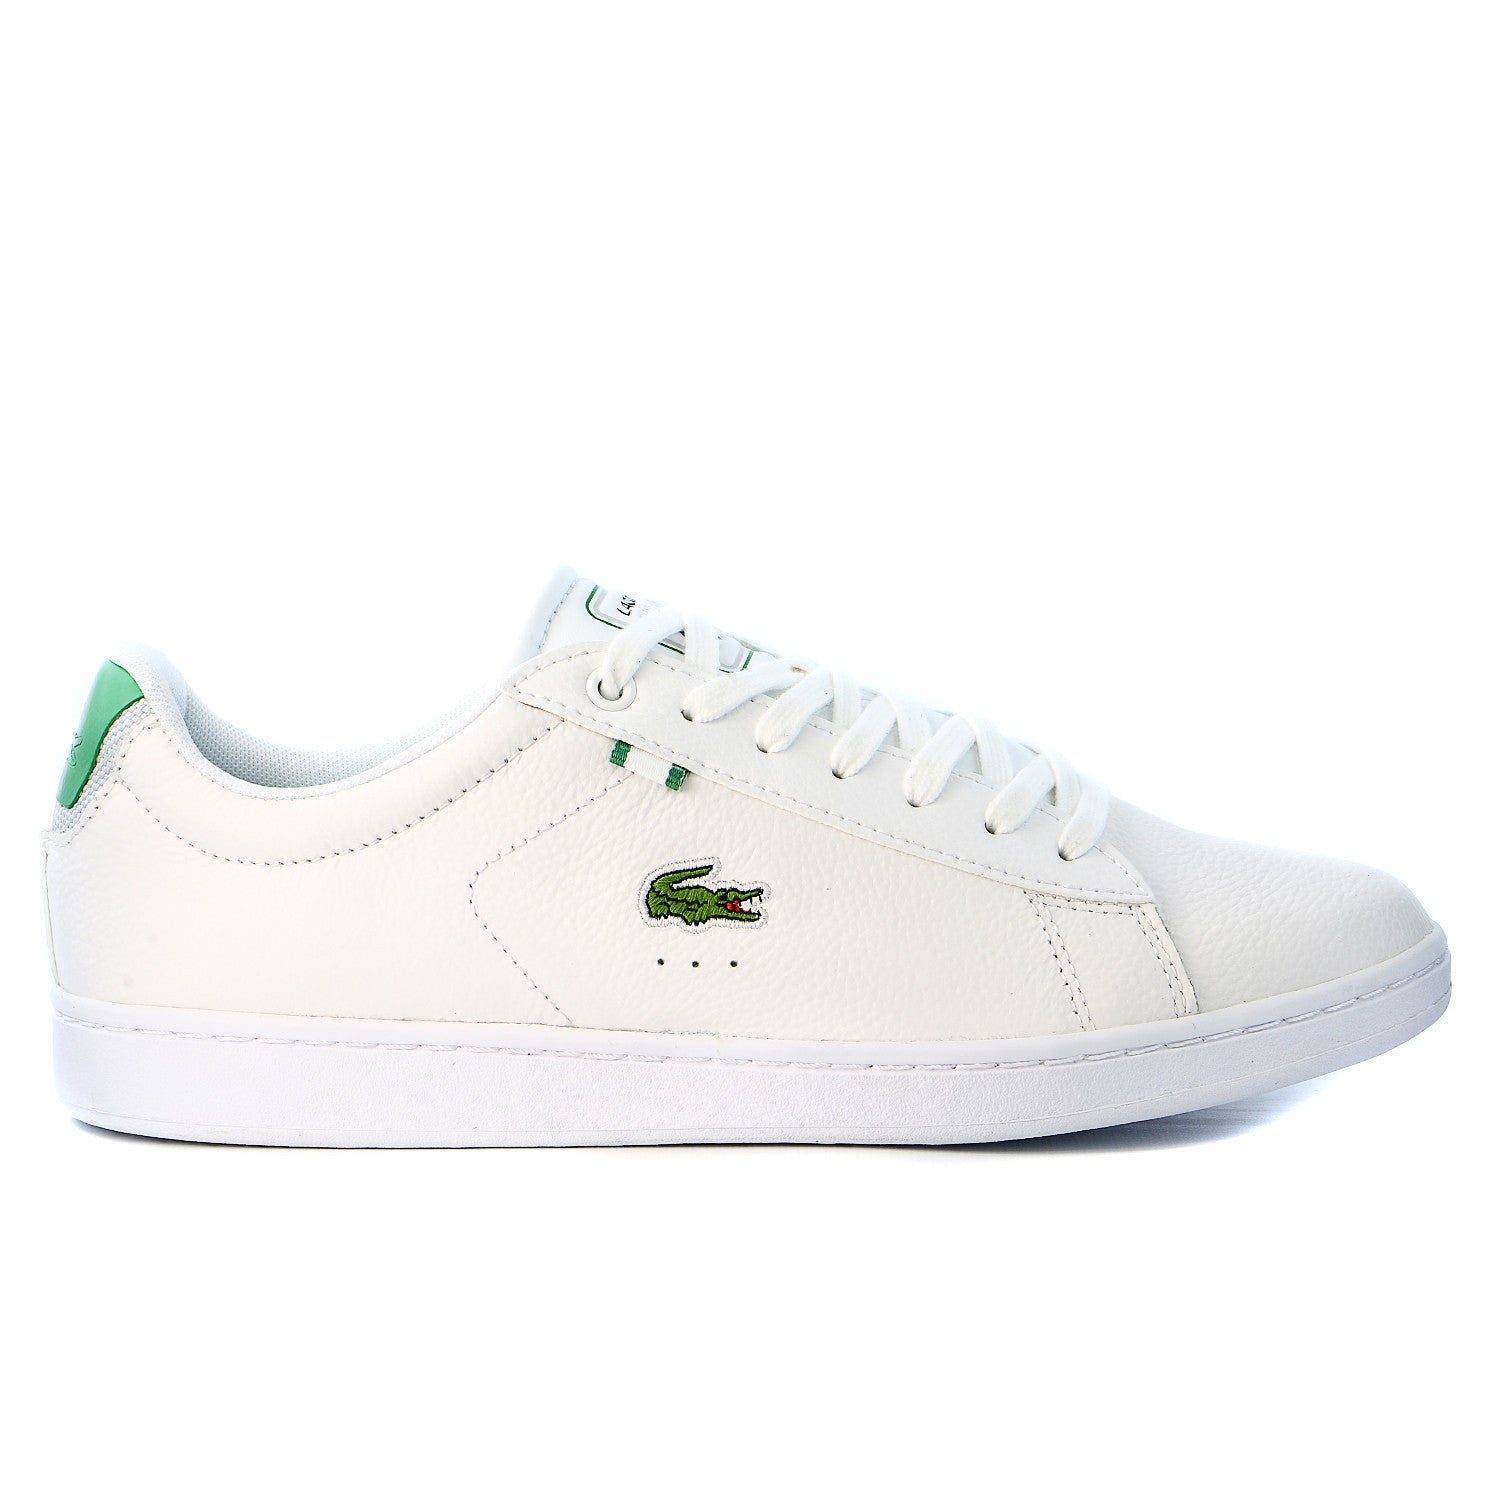 641b17435c69 Lacoste Carnaby EVO Leather Training Sneaker Shoe - White Green - Mens -  Shoplifestyle